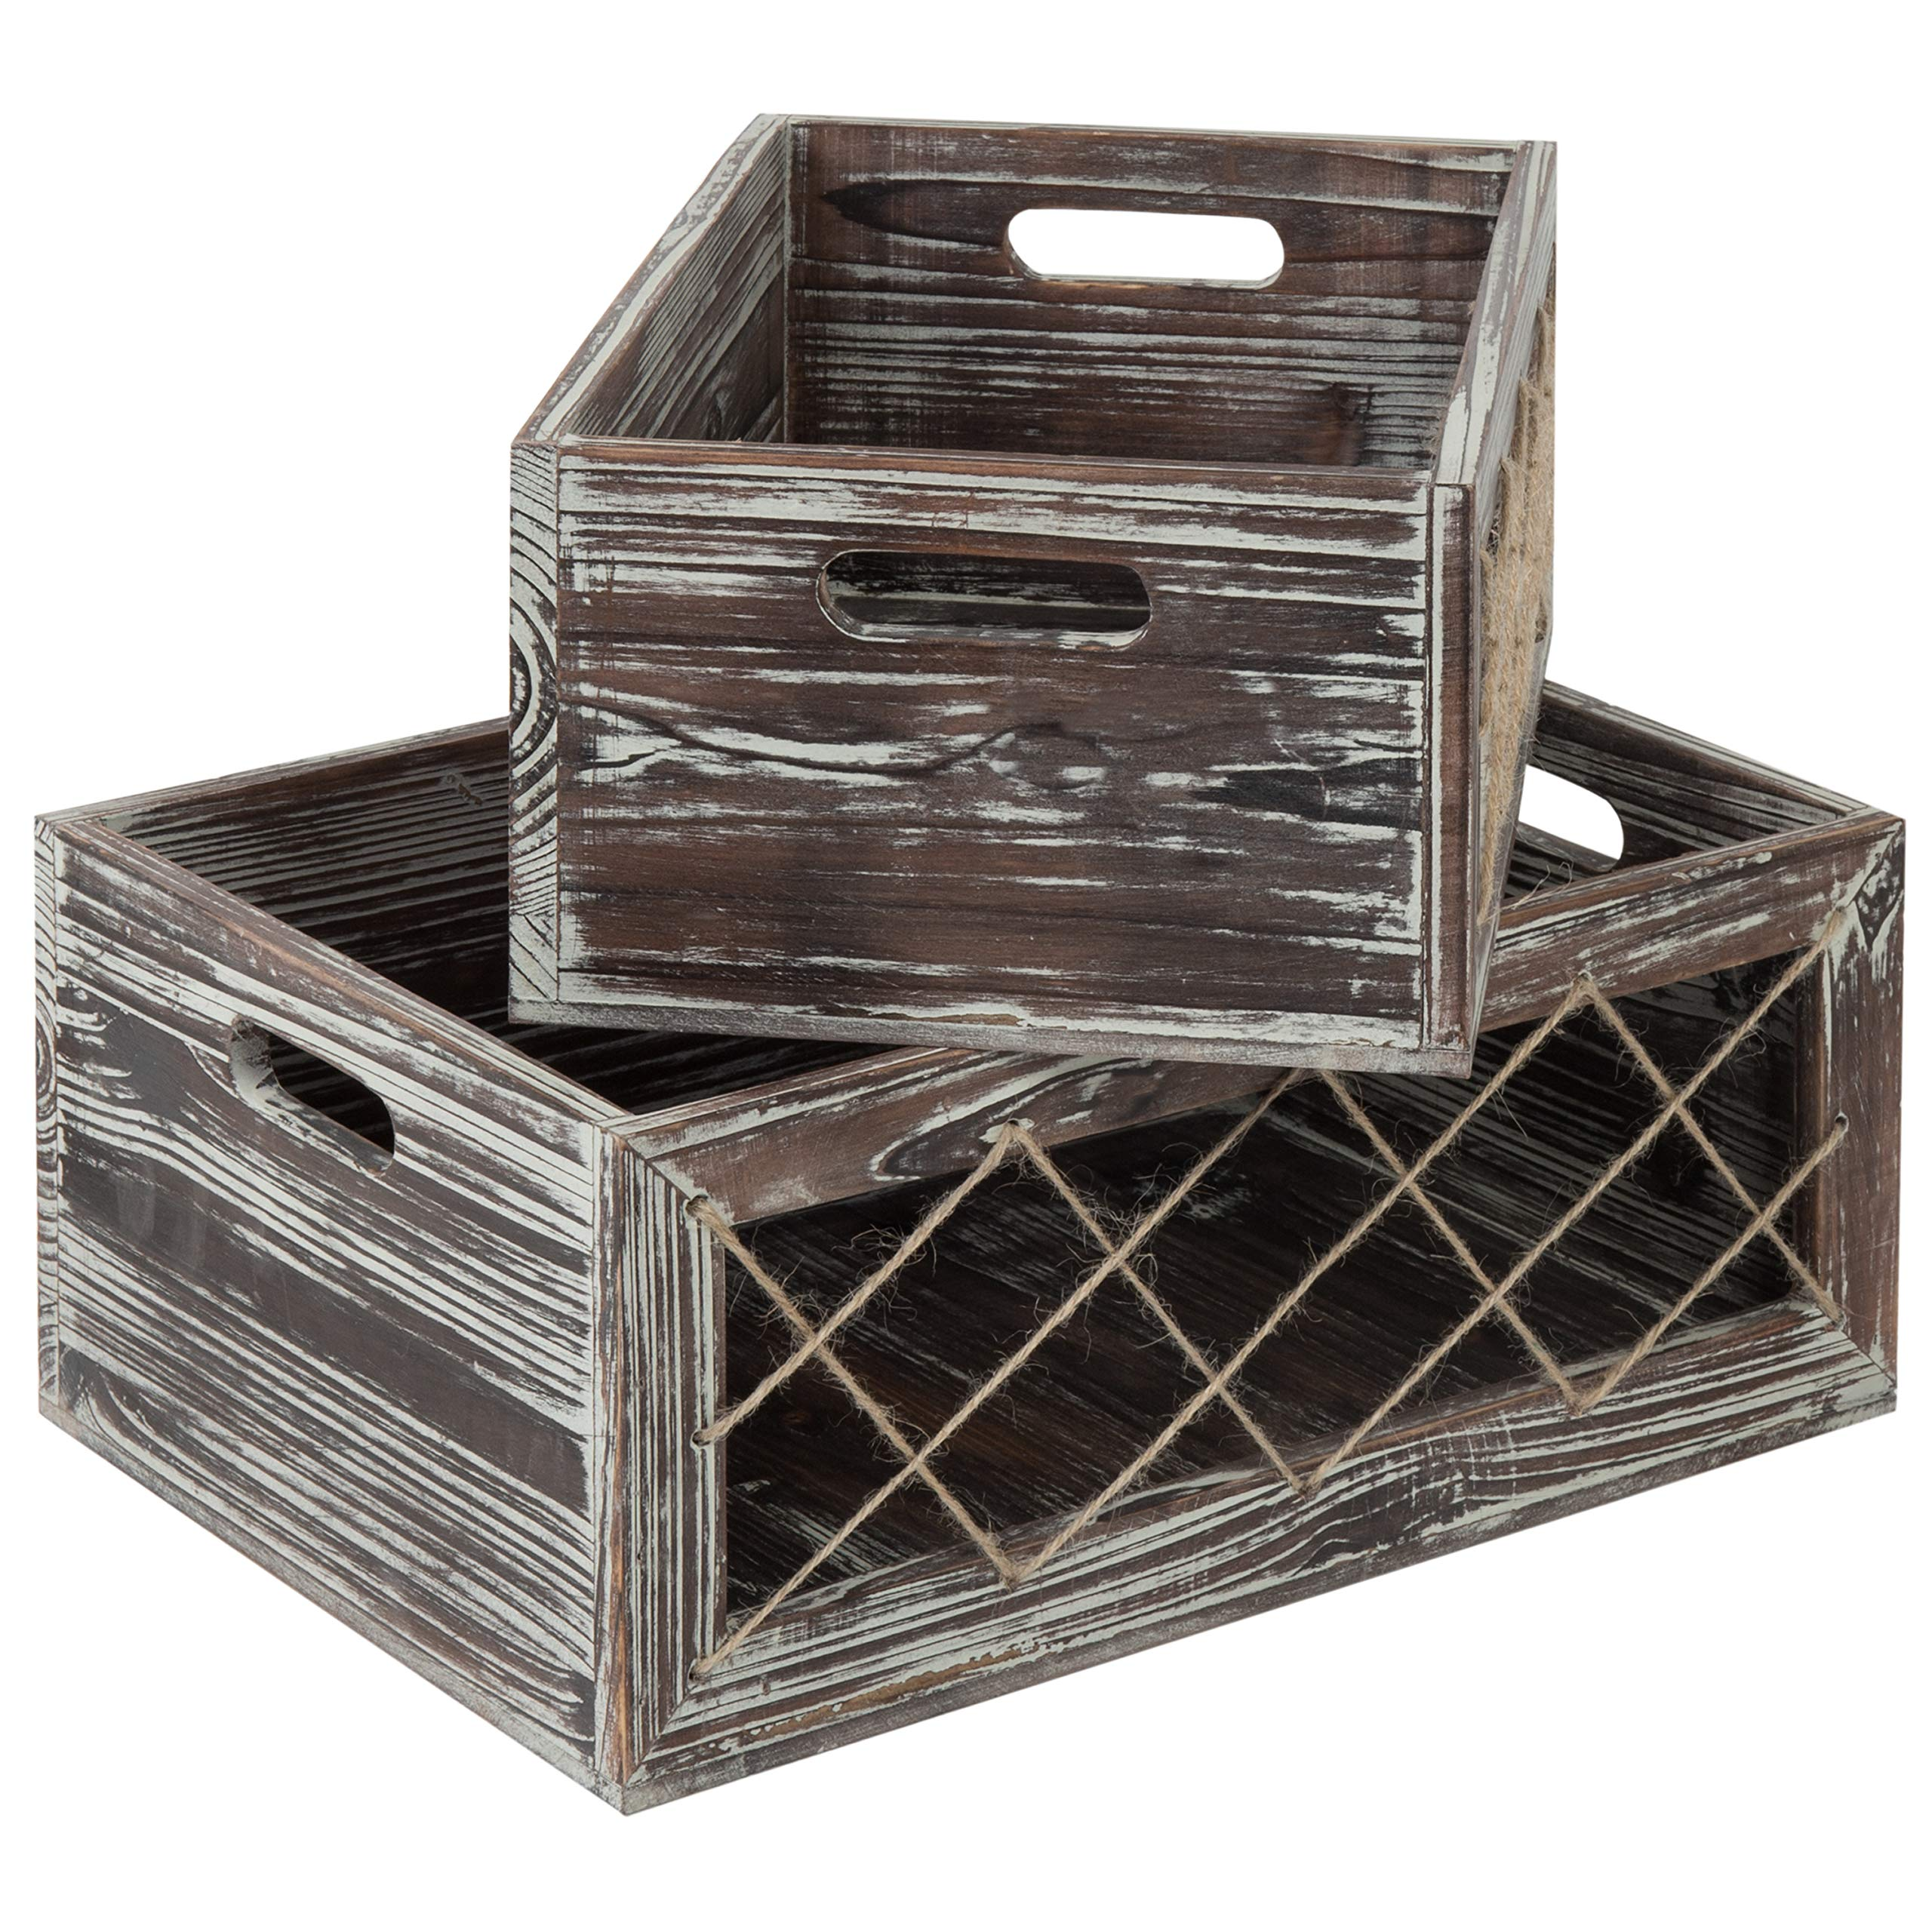 MyGift Rustic Torched Wood Nesting Storage Crates with Rope, Set of 2 by MyGift